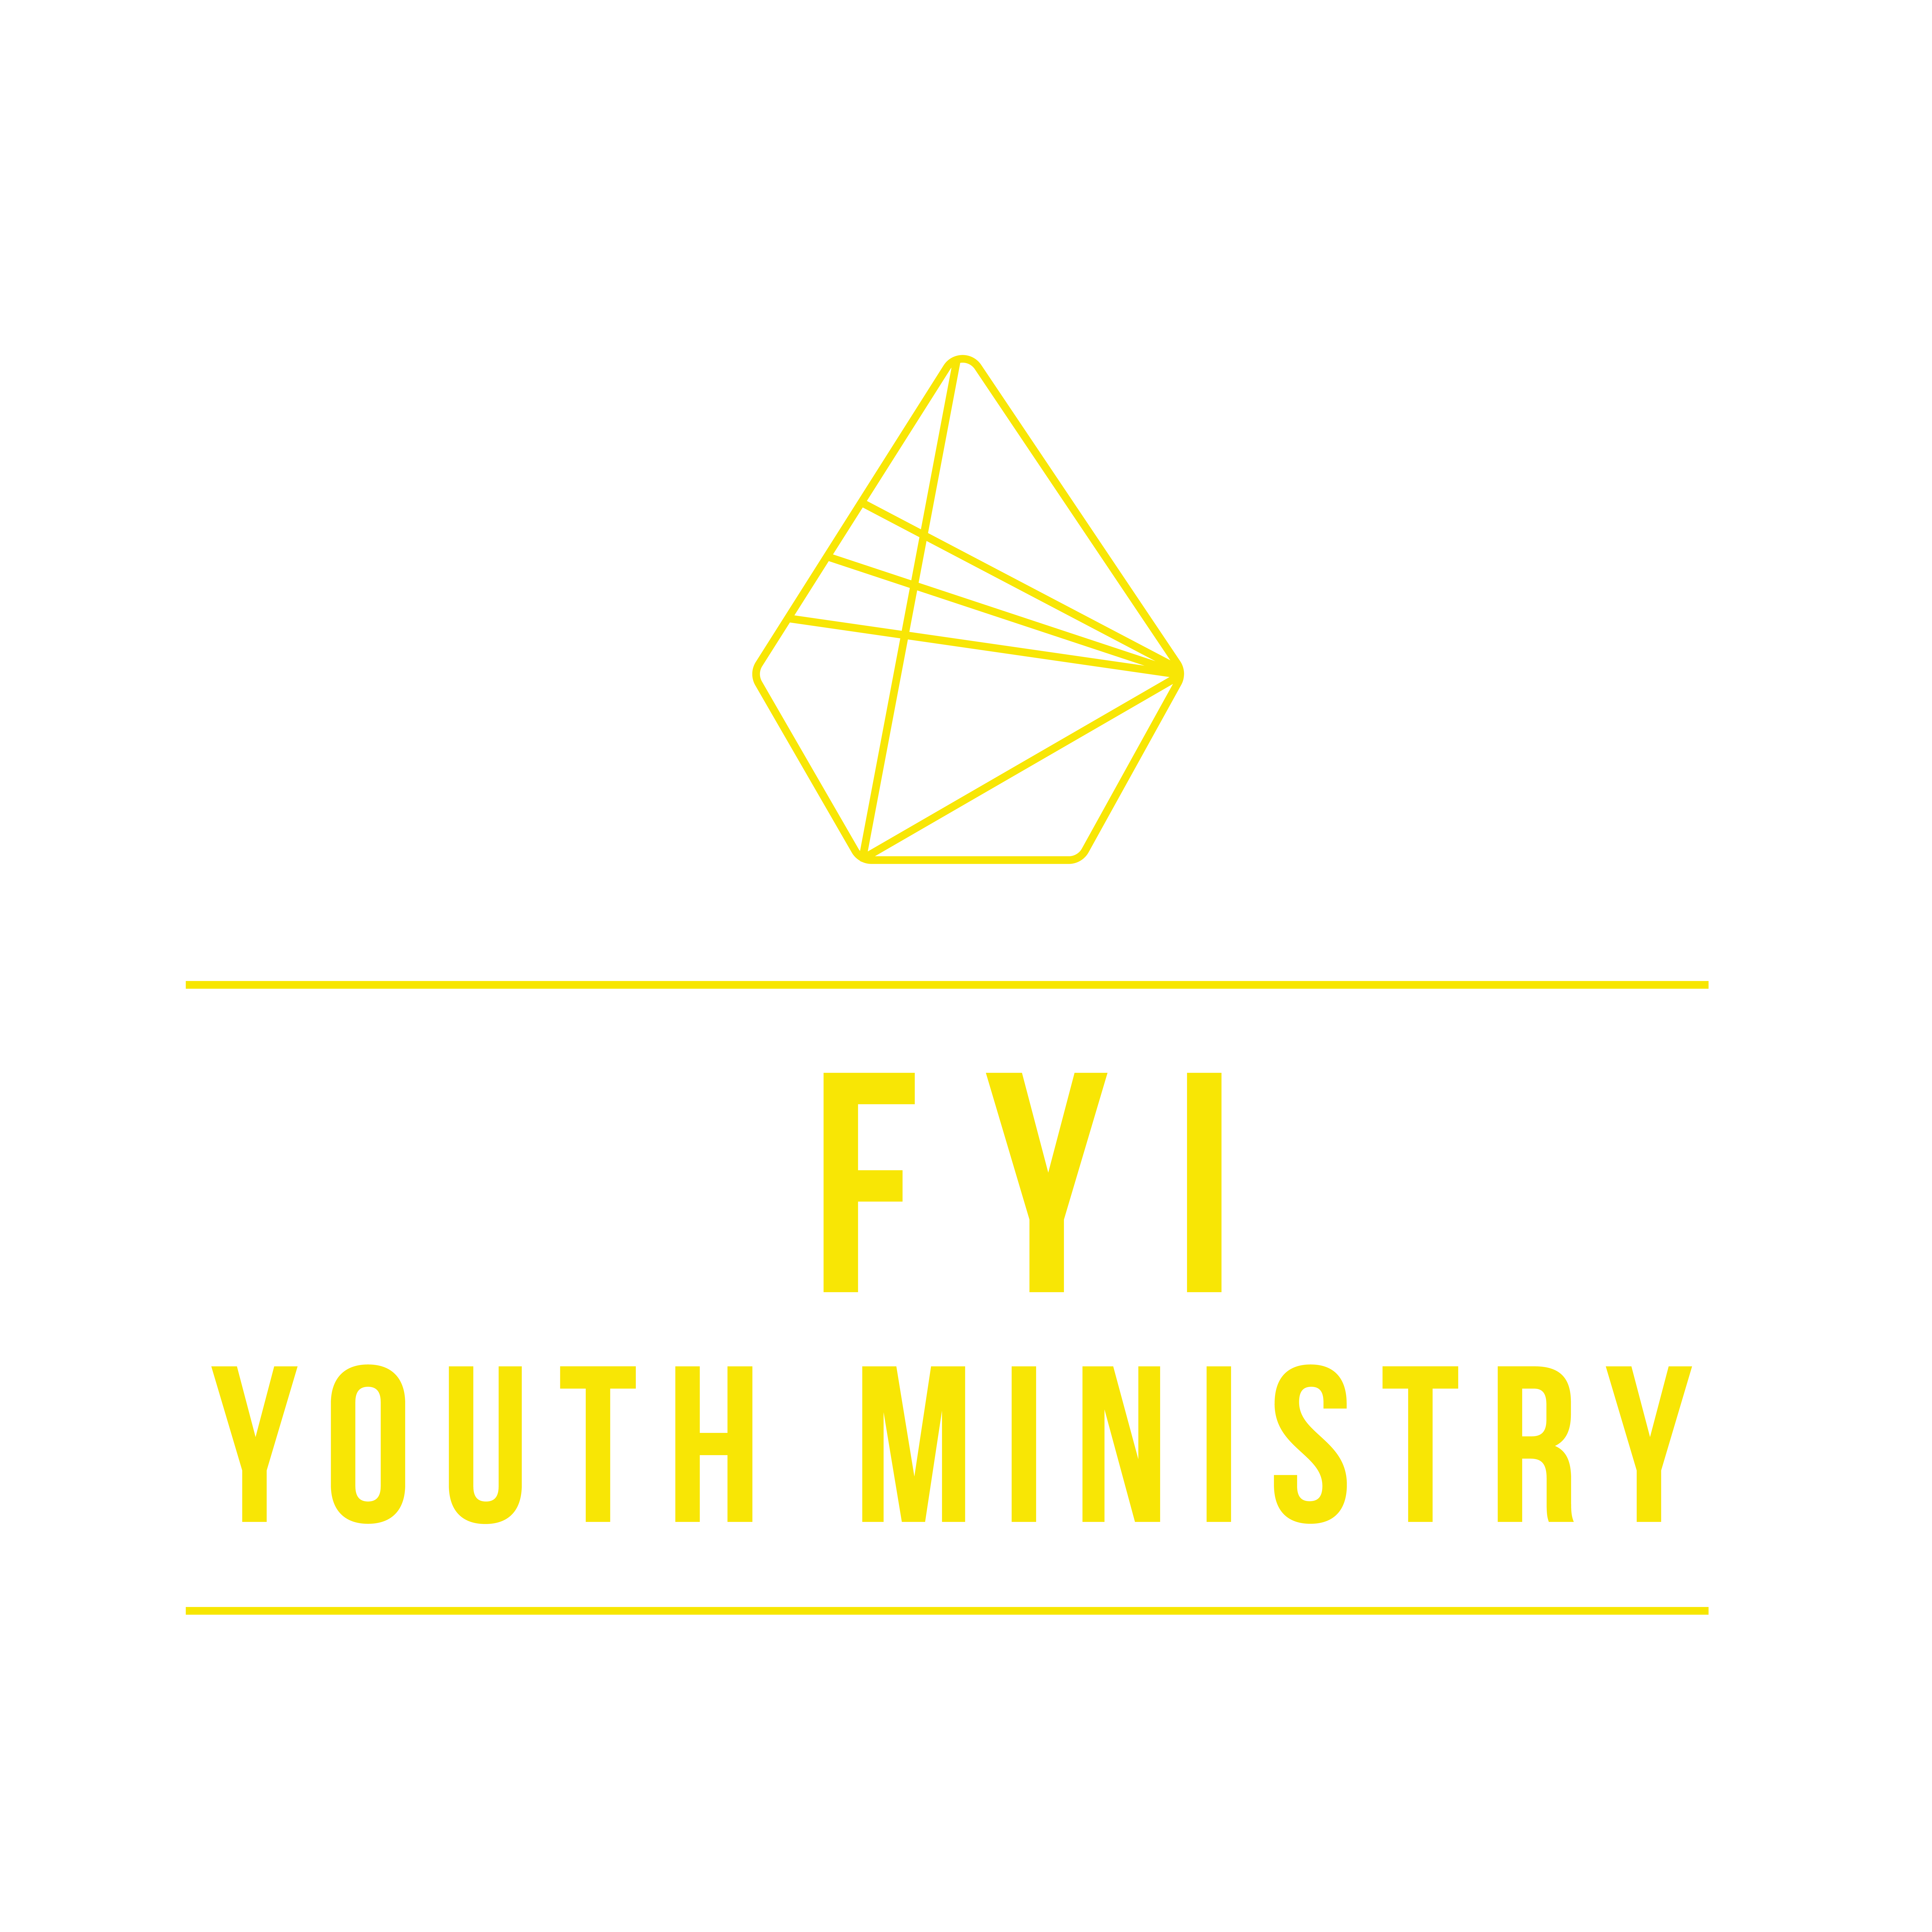 The FYI on Youth Ministry